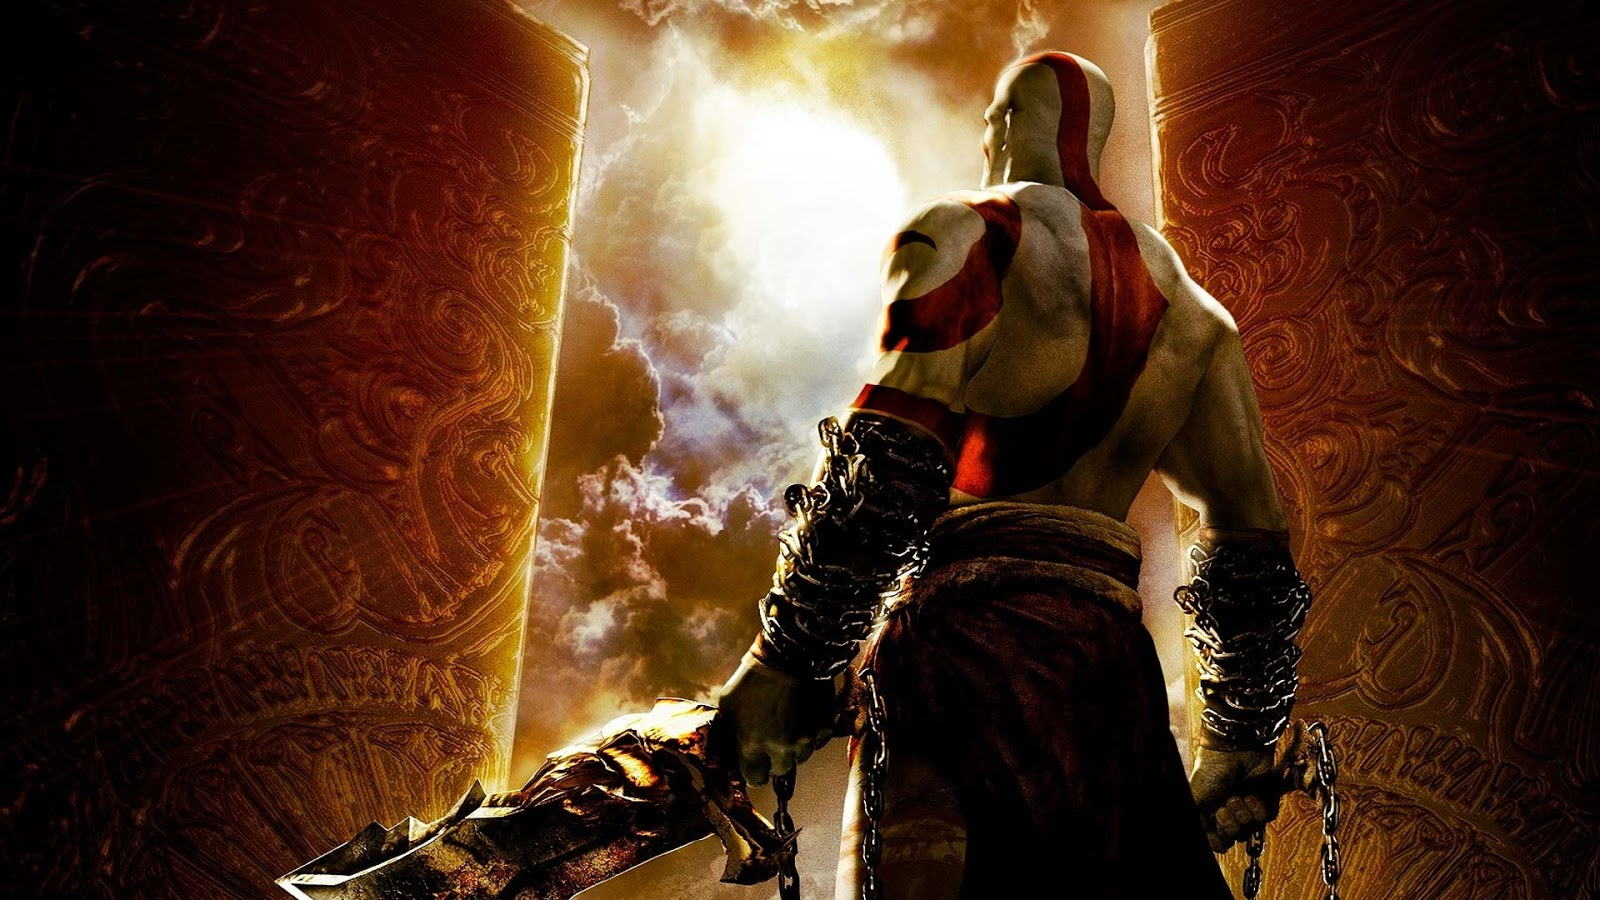 God of war chains of olympus so friends in this game u will get real 3d graphics this game is very rare to find so friends today i bring a direct link to download this file voltagebd Images